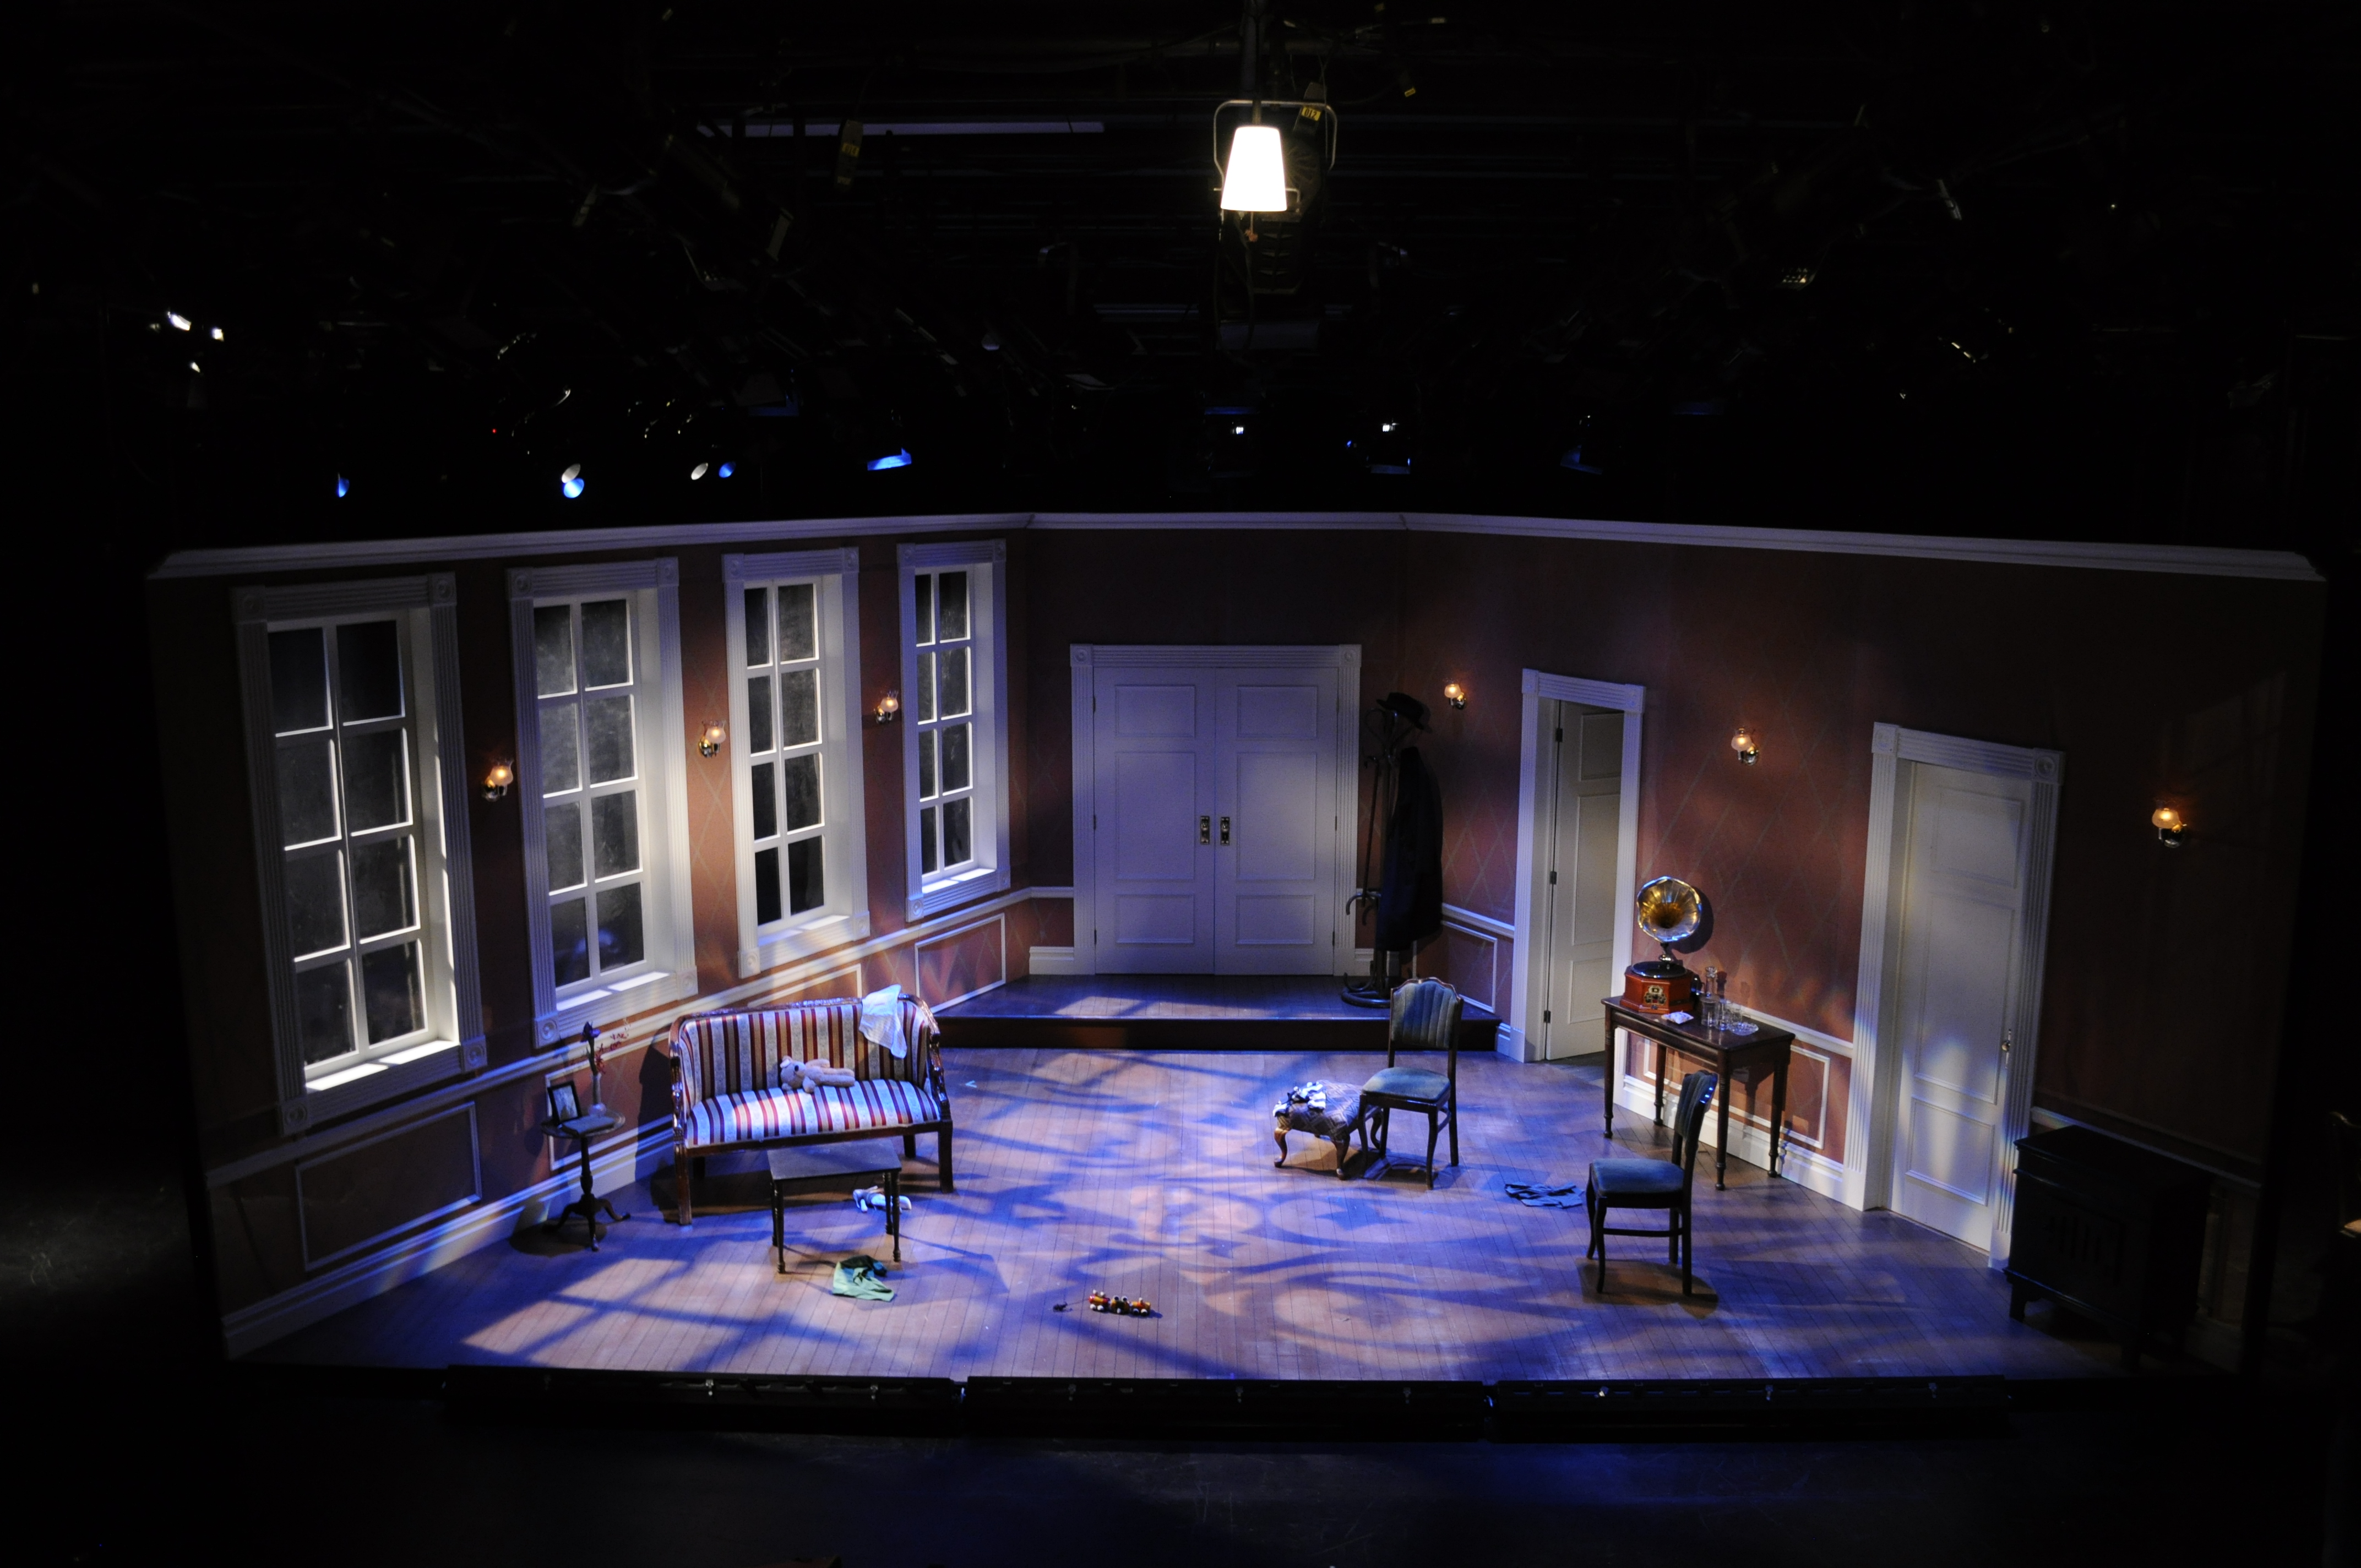 A Dolls House - Hunter College